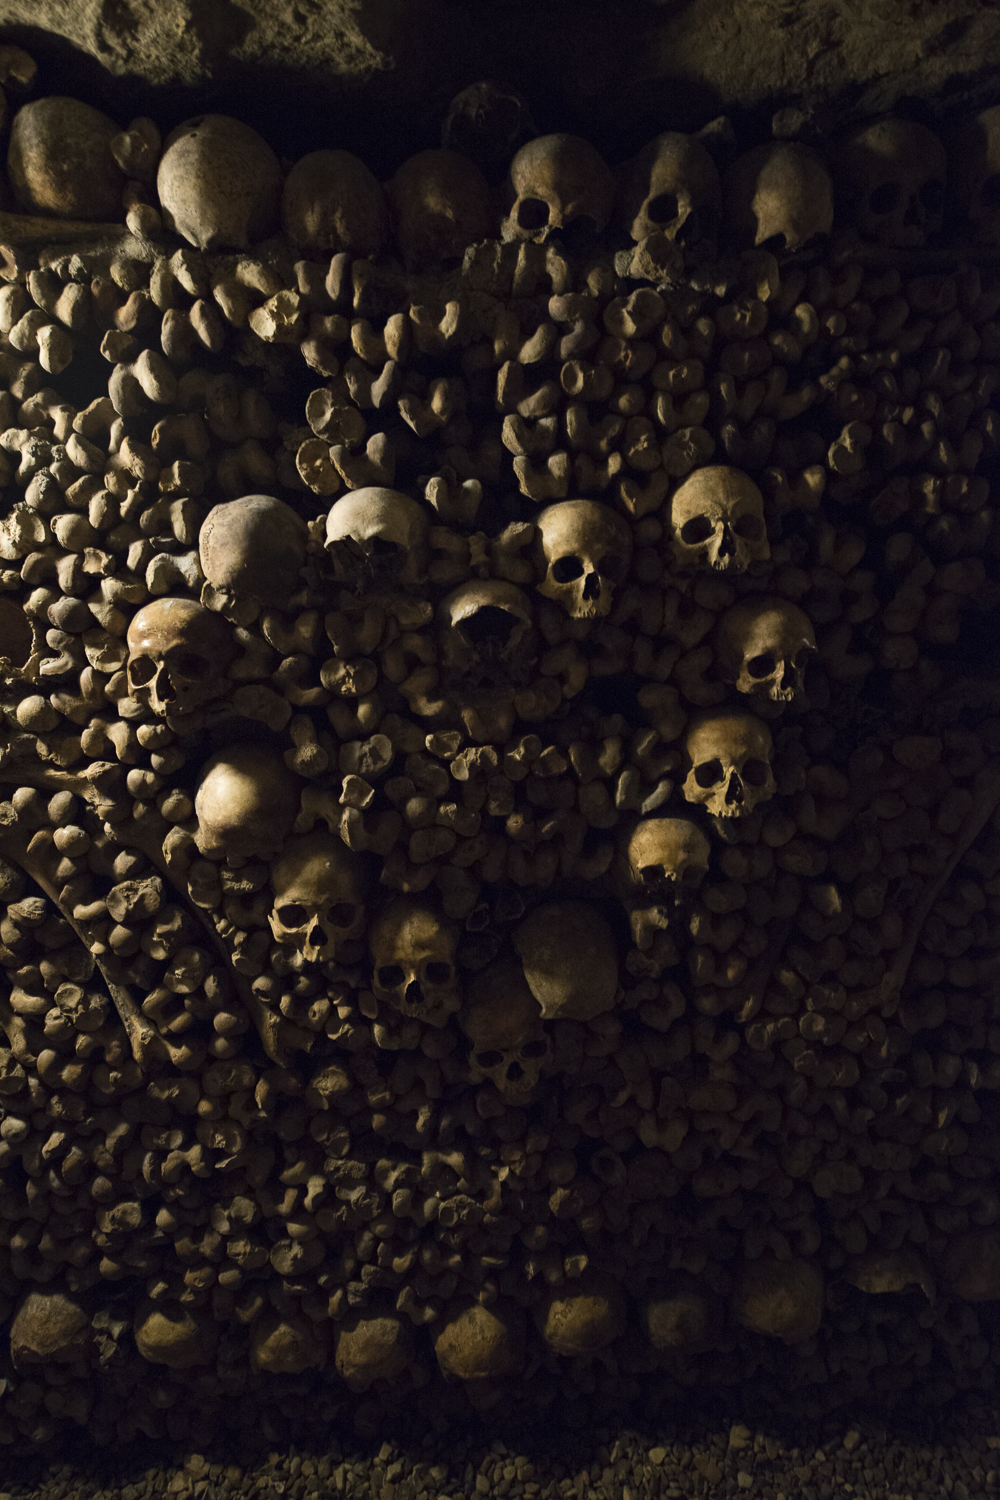 Catacombs of Paris - PHOTOGRAPHY : ALEXANDER J.E. BRADLEY - NIKON D7100 - NIKKOR 14-24MM F/2.8 @ 14MM - F/2.8 - 1/30 - ISO:6400